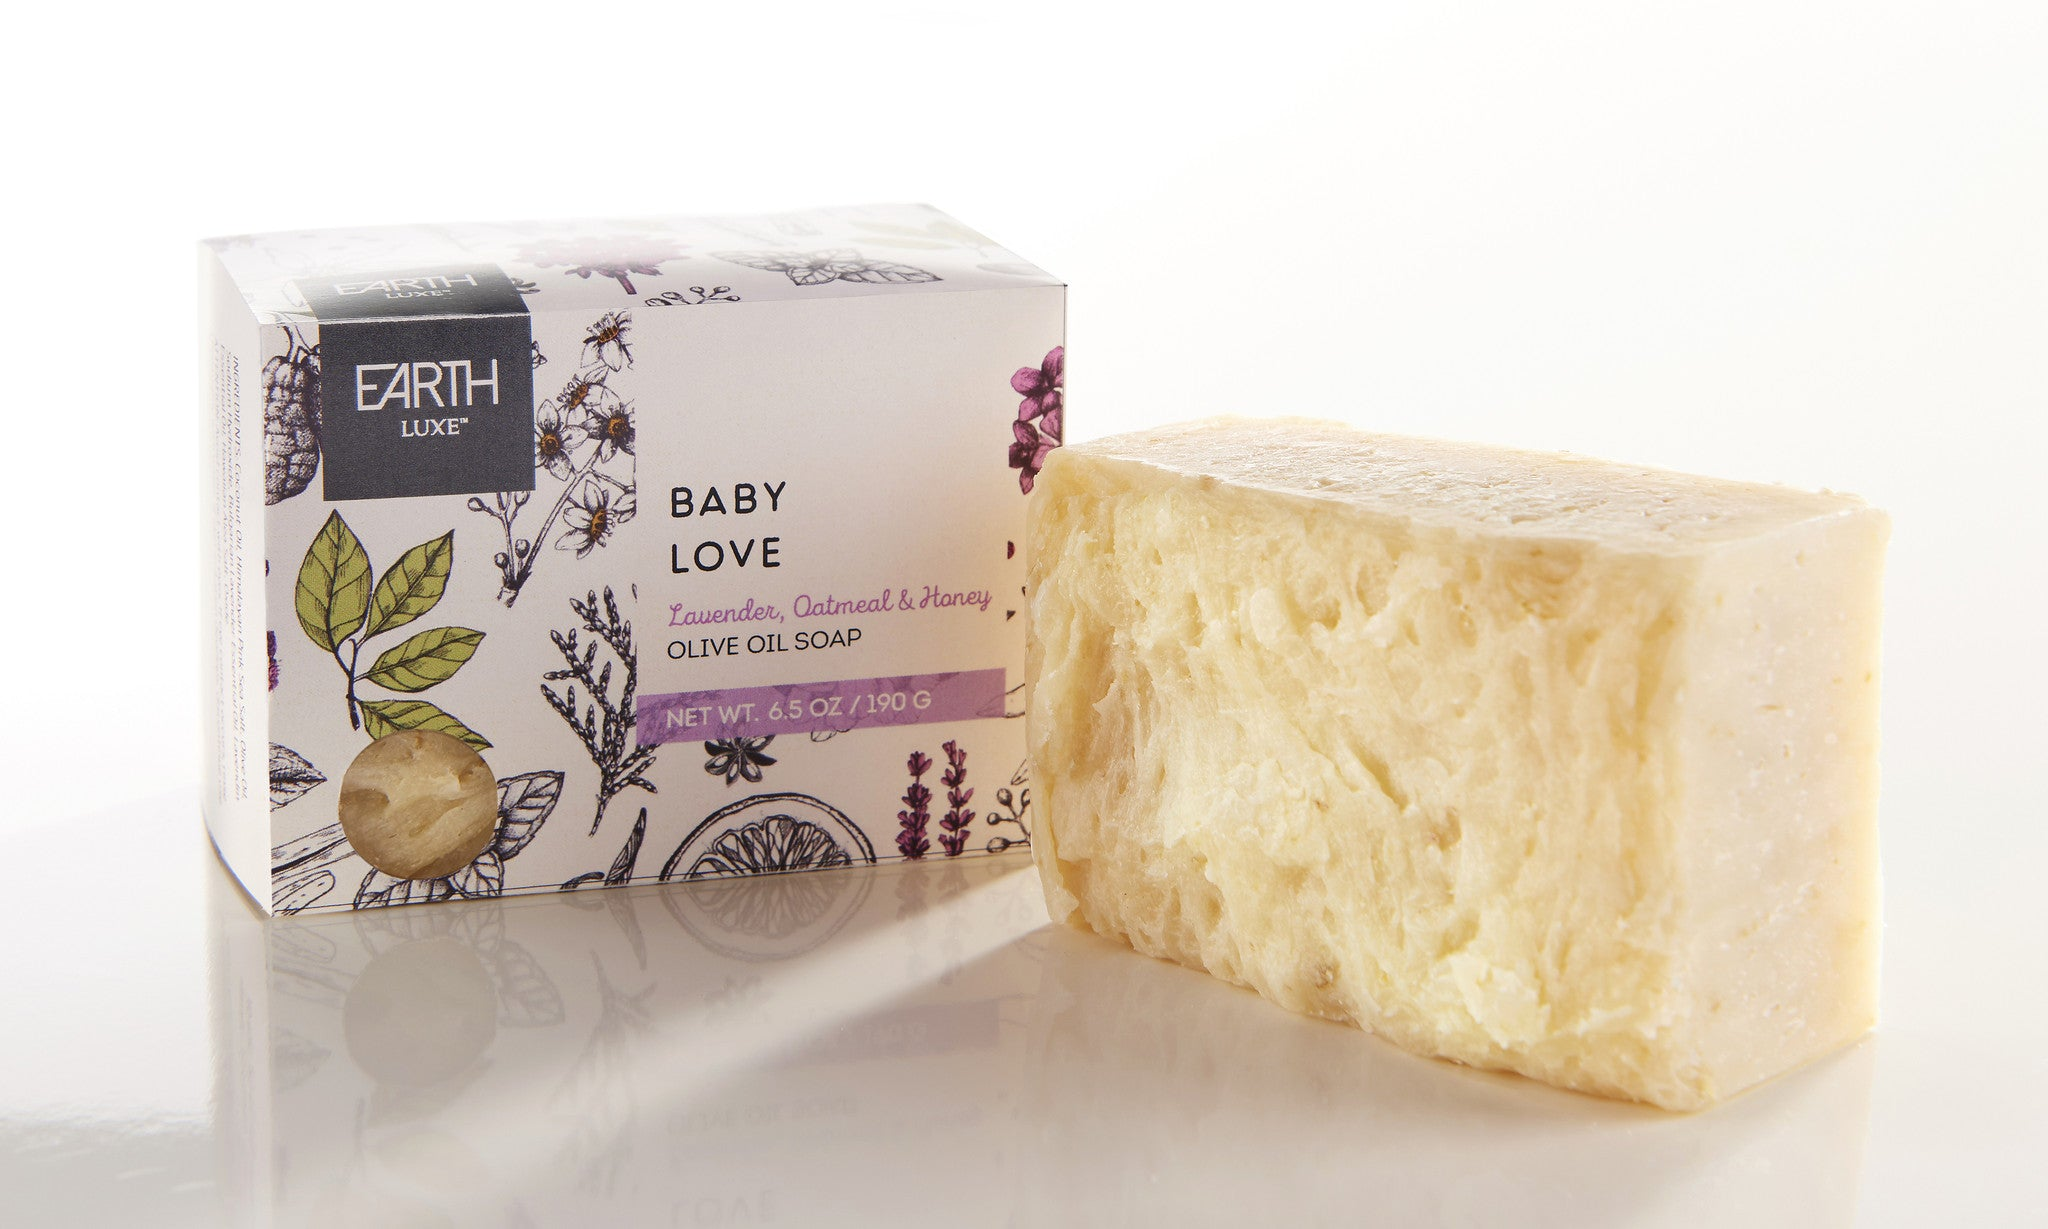 Luxe Bath Soap -baby love lavender oatmeal & honey - Pi Style Boutique - Giftcraft - Bath & Body